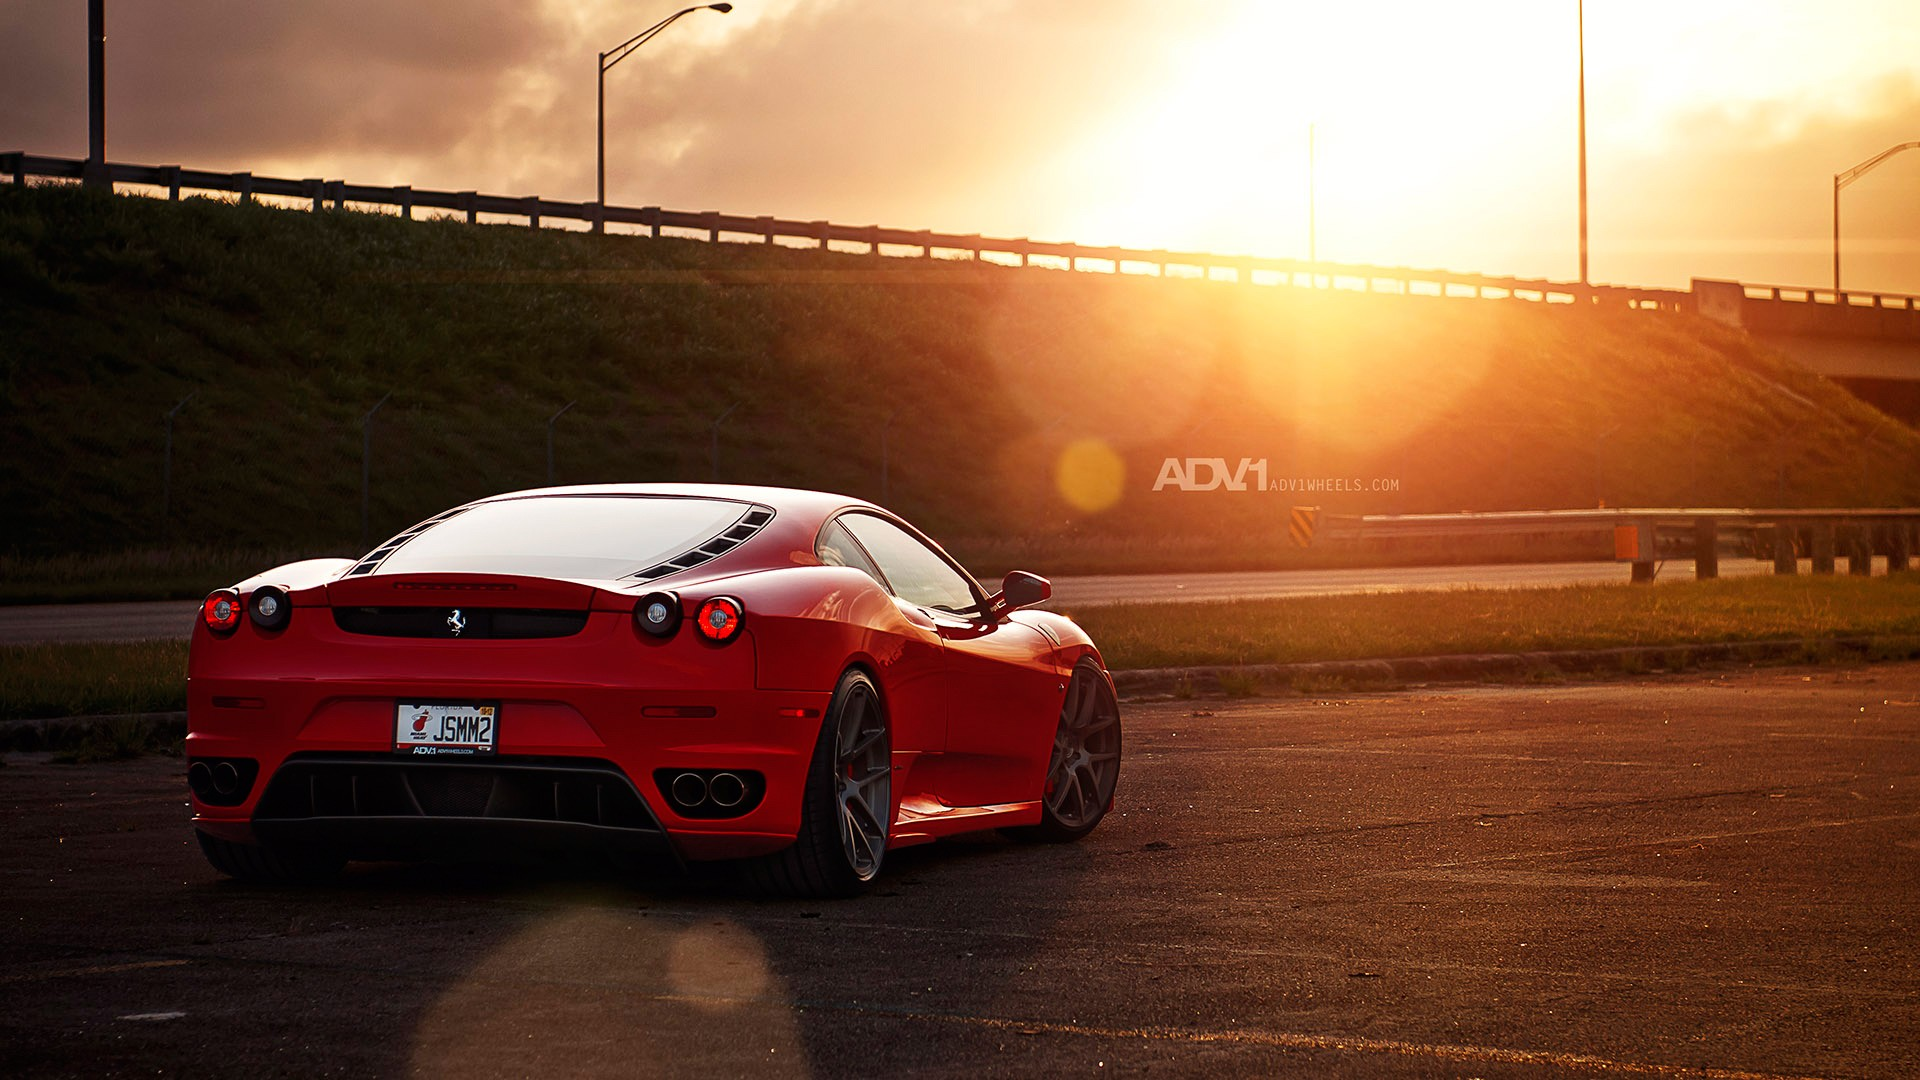 ADV1 Wheels Ferrari F430 Wallpaper | HD Car Wallpapers ...